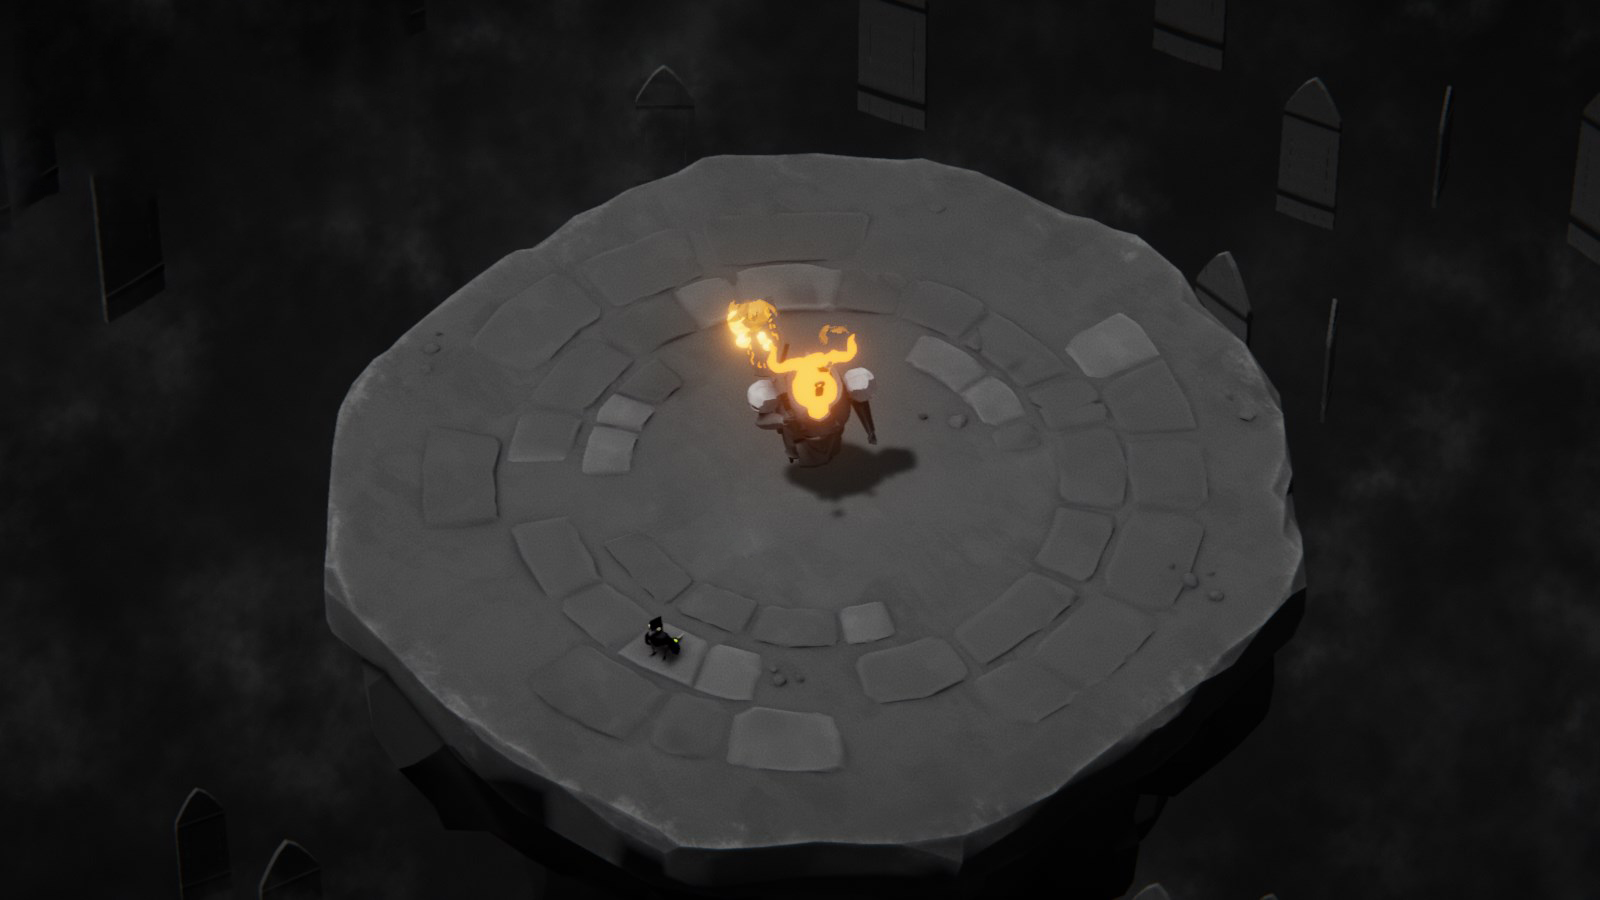 A fiery boss wielding a large tuning fork on a stone platform with a small crow